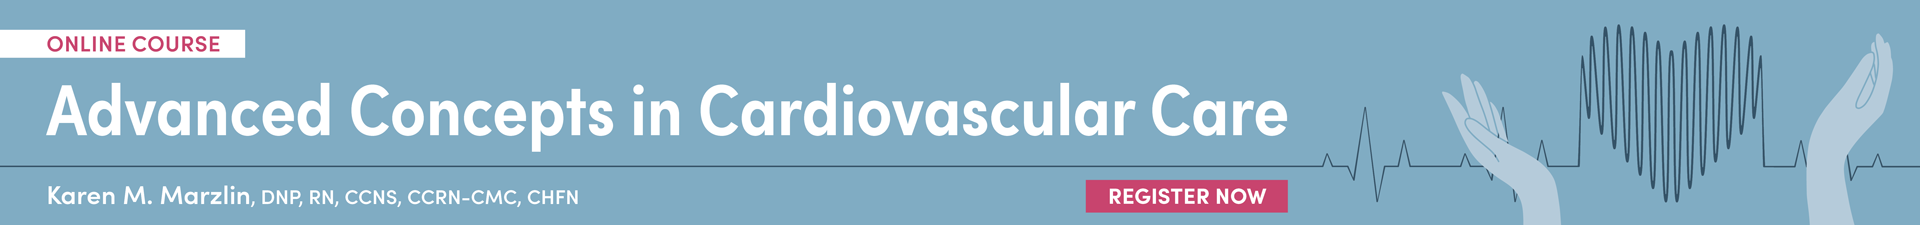 Online Course: Advanced Concepts in Cardiovascular Care